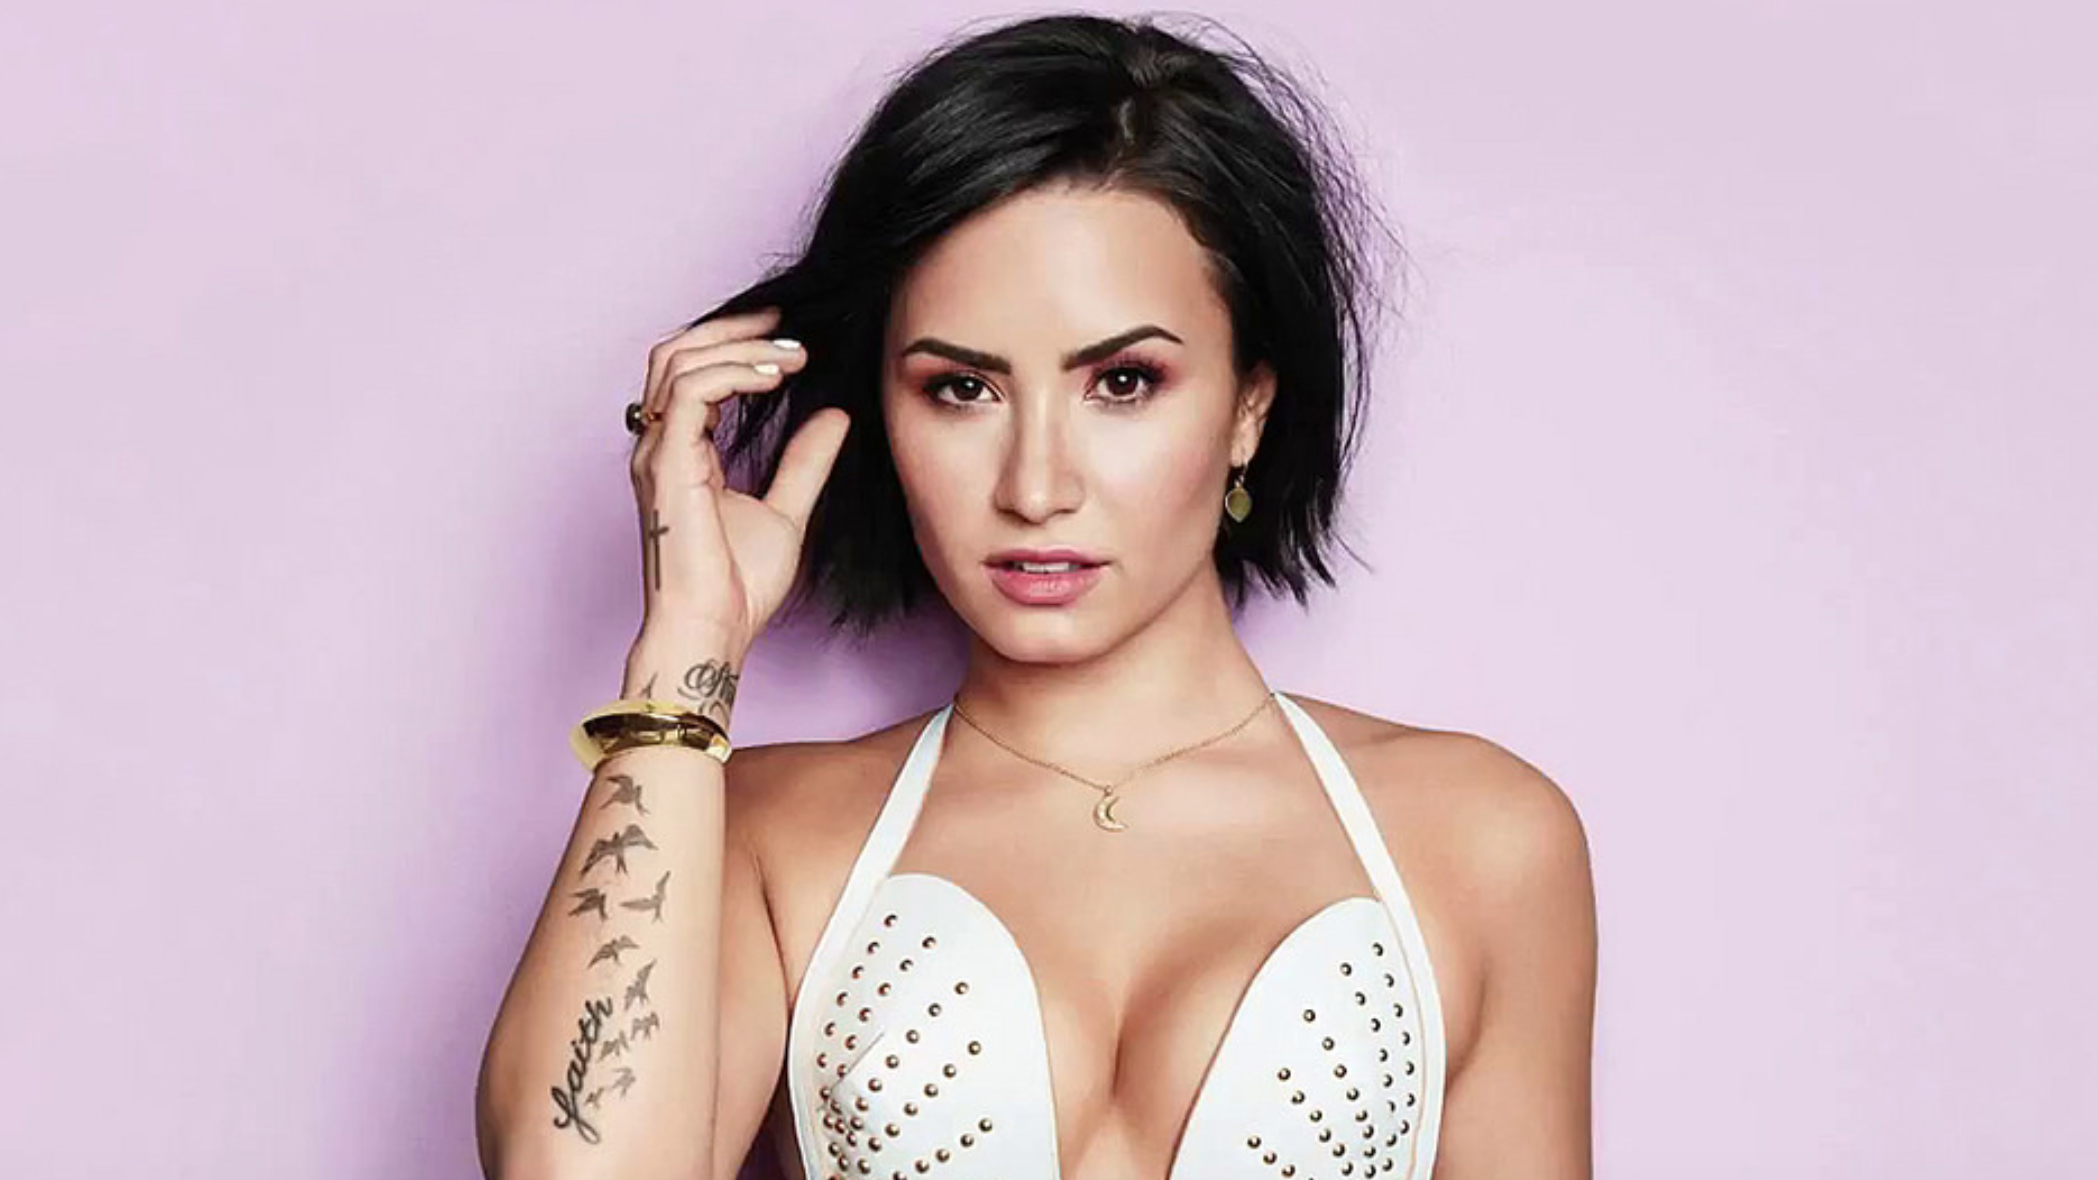 demi lovato, celebs, pop culture, Music